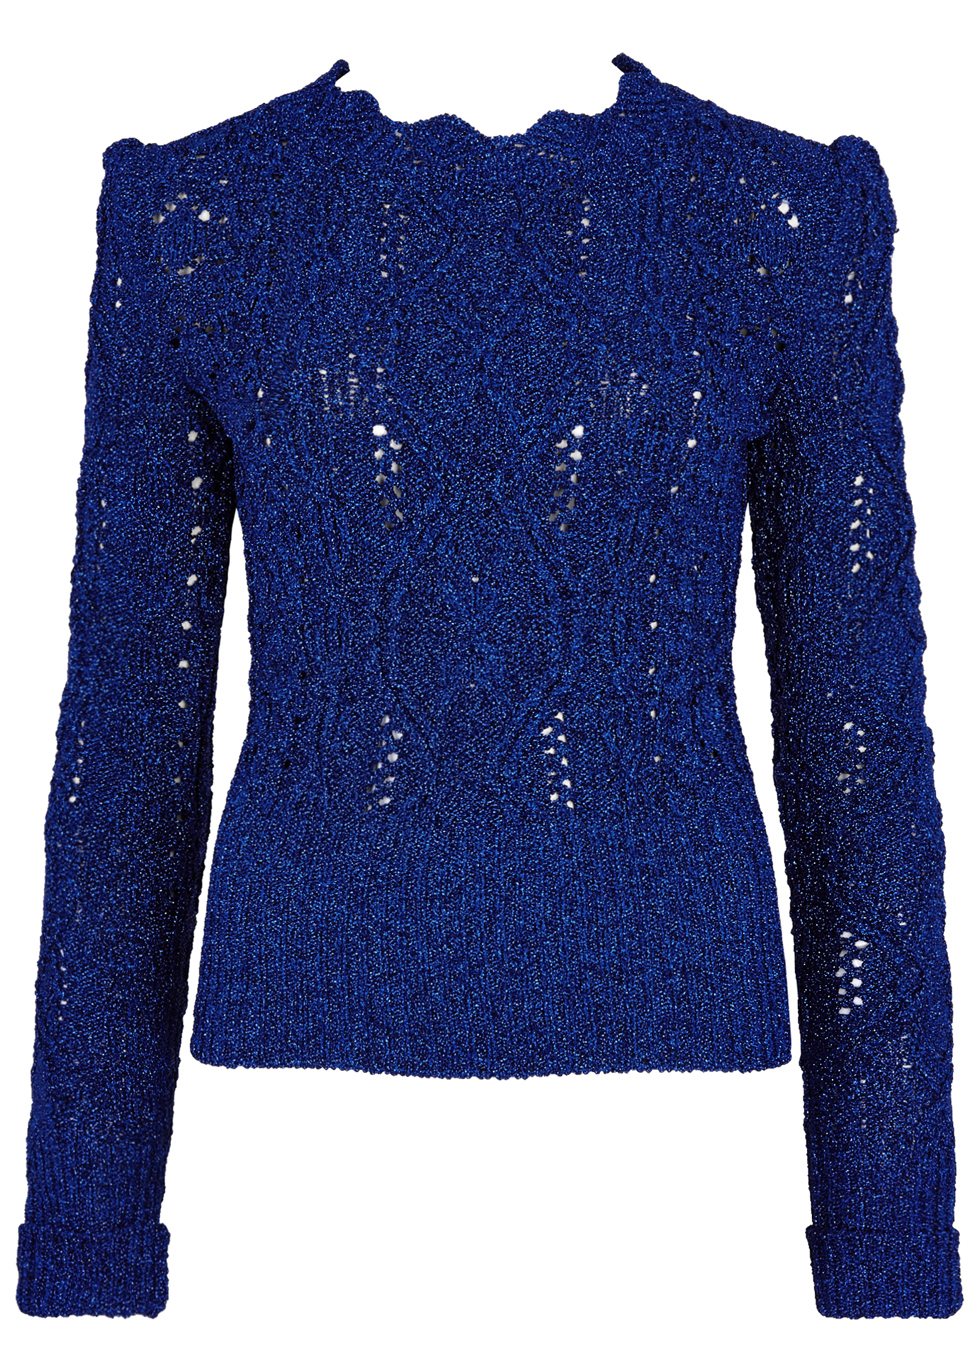 Debie Metallic Blue Cable Knit Jumper - neckline: round neck; style: standard; pattern: cable knit; predominant colour: royal blue; occasions: casual, work, creative work; length: standard; fibres: polyester/polyamide - mix; fit: slim fit; sleeve length: long sleeve; sleeve style: standard; texture group: knits/crochet; pattern type: knitted - big stitch; pattern size: standard; season: a/w 2016; wardrobe: highlight